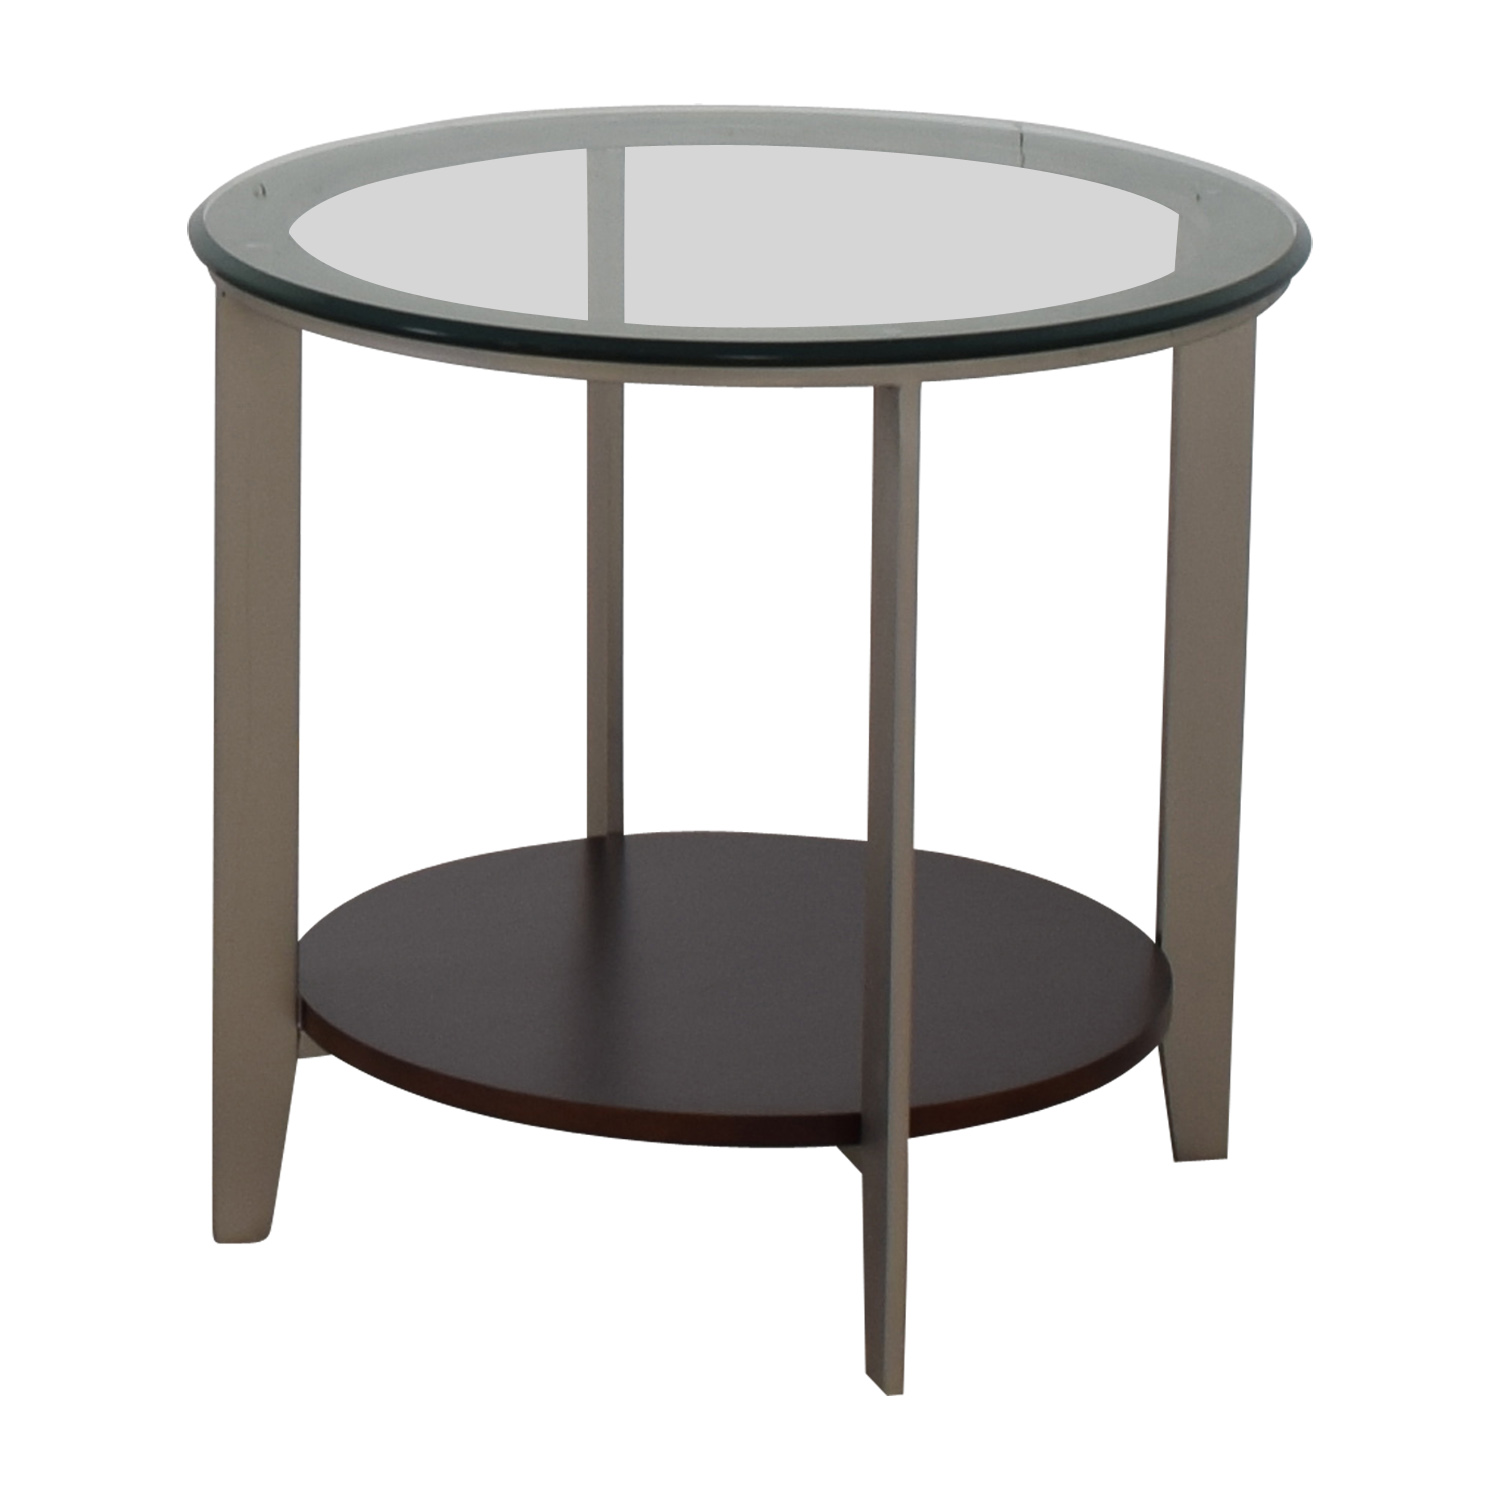 Ethan Allen Ethan Allen Elements Glass Top End Table for sale